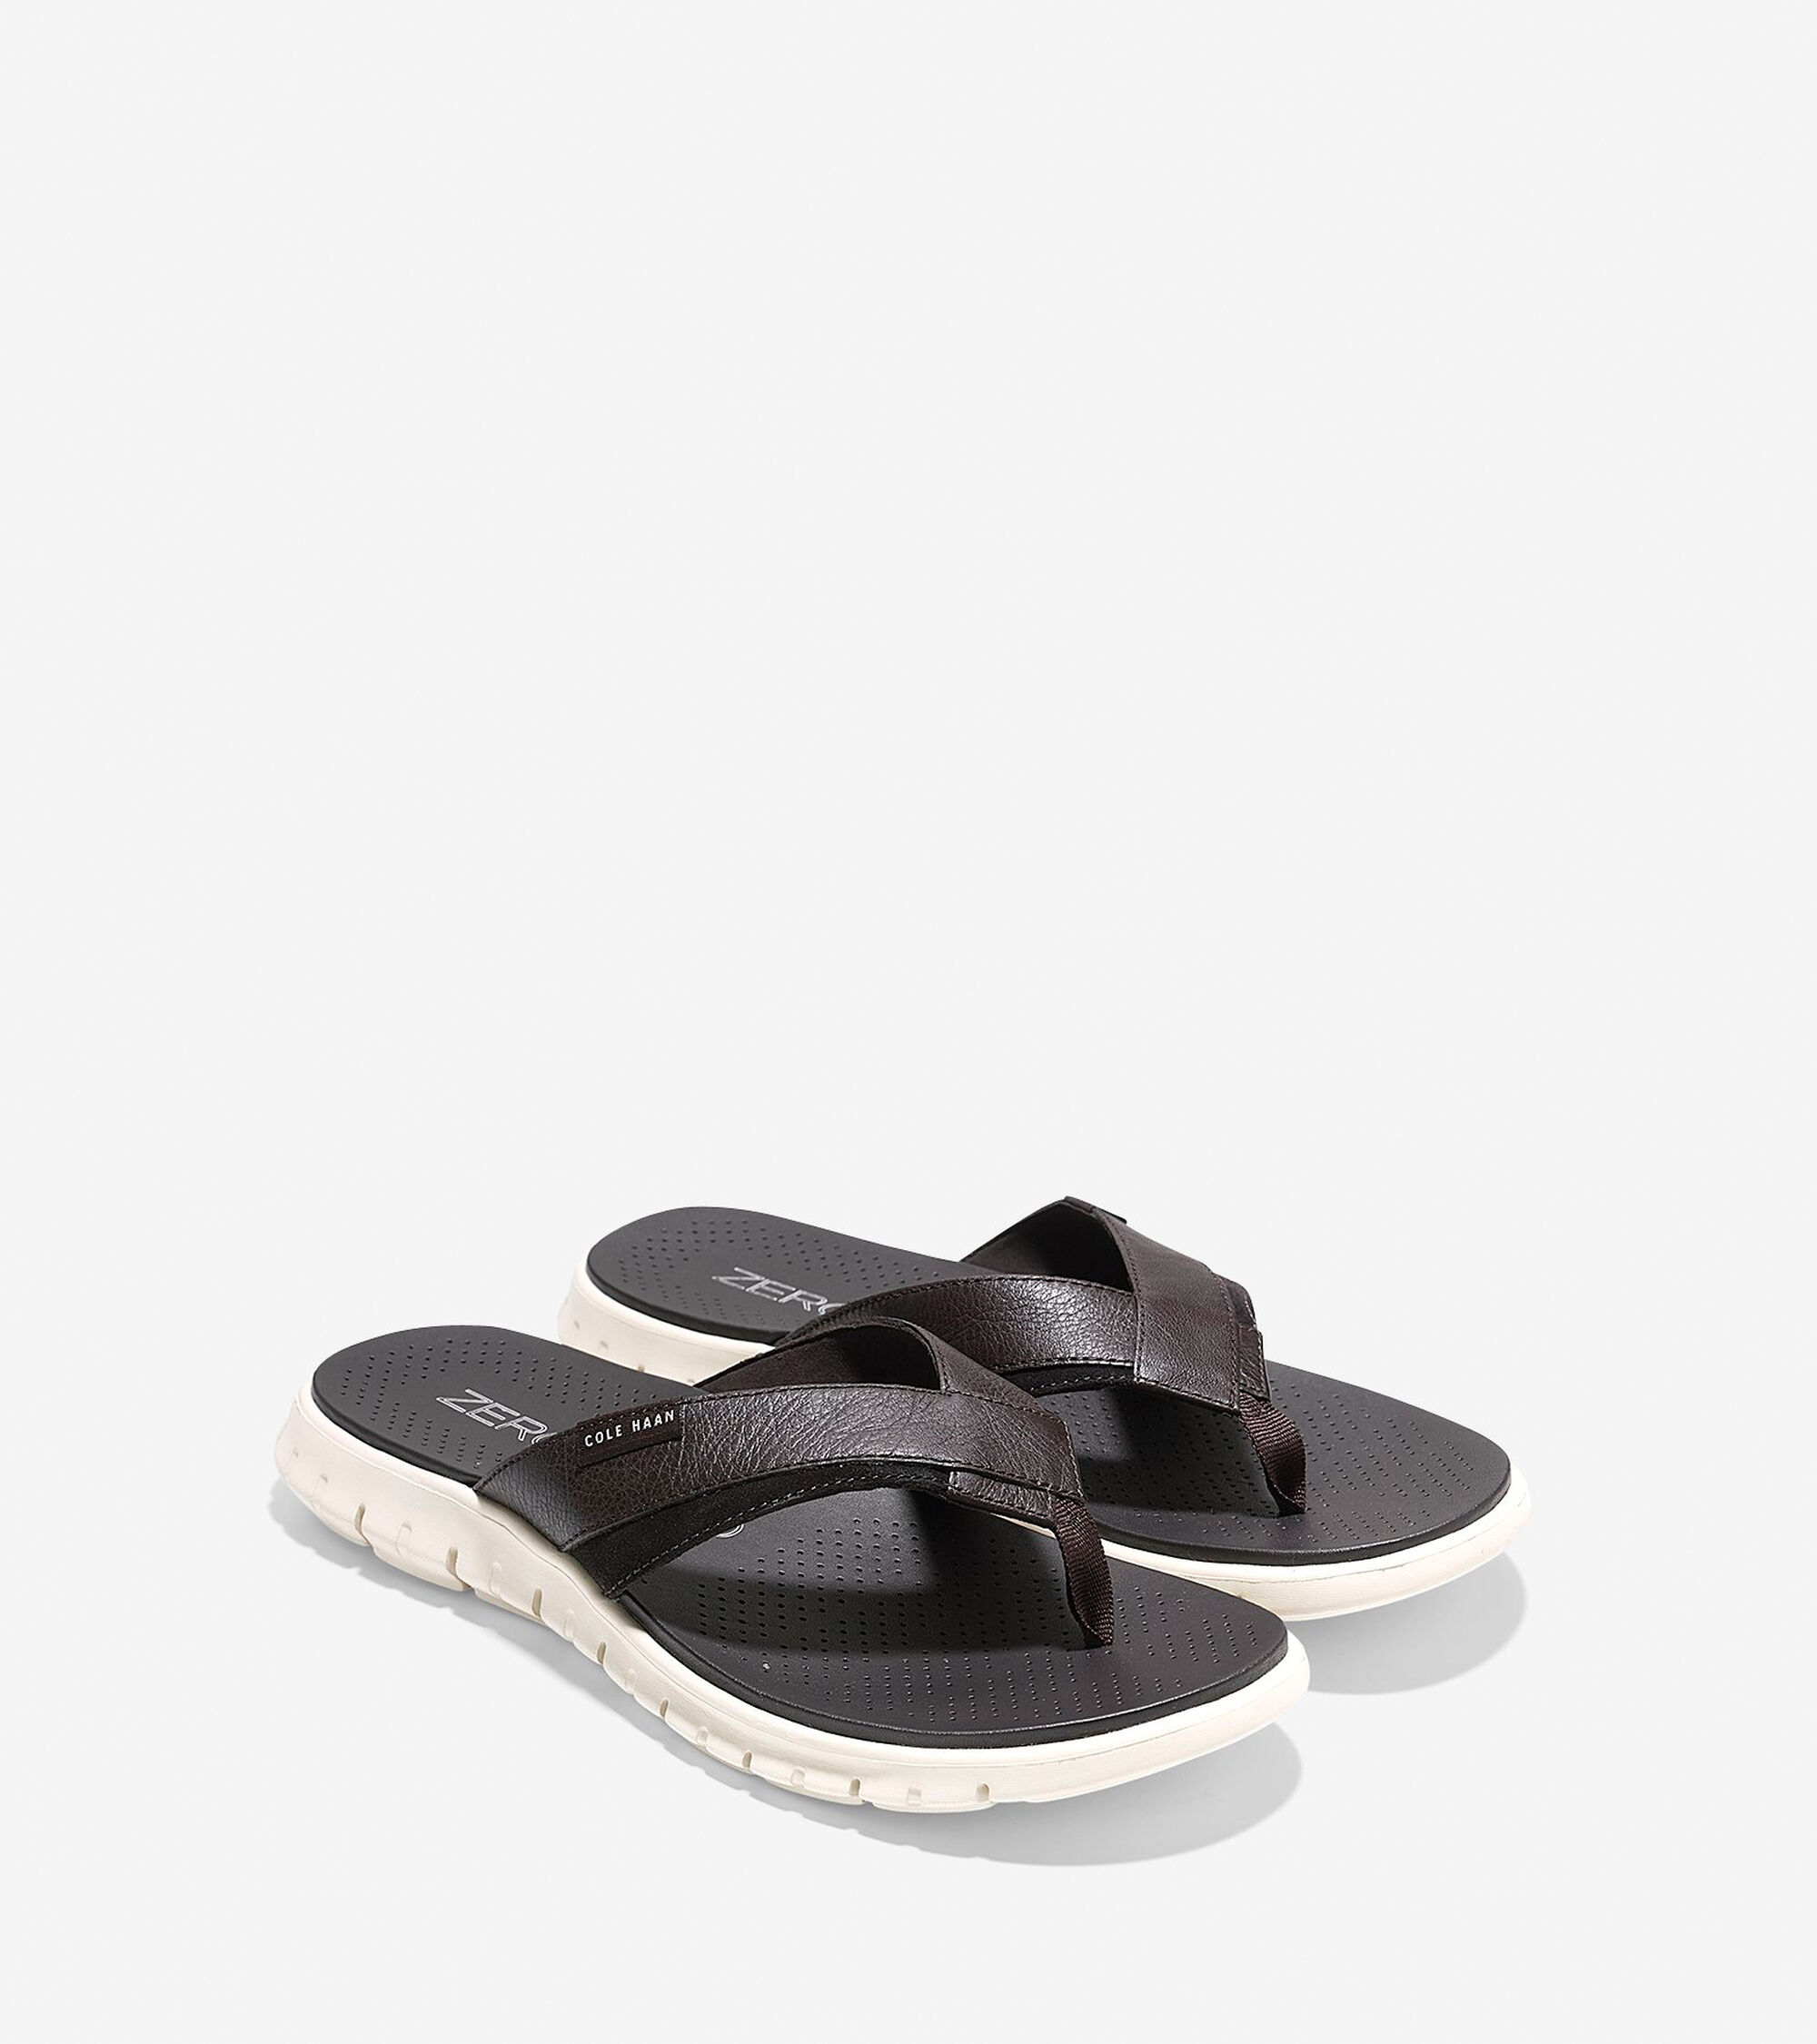 8d9a2ed202b6 Men s ZEROGRAND Fold Thong Sandals in Java